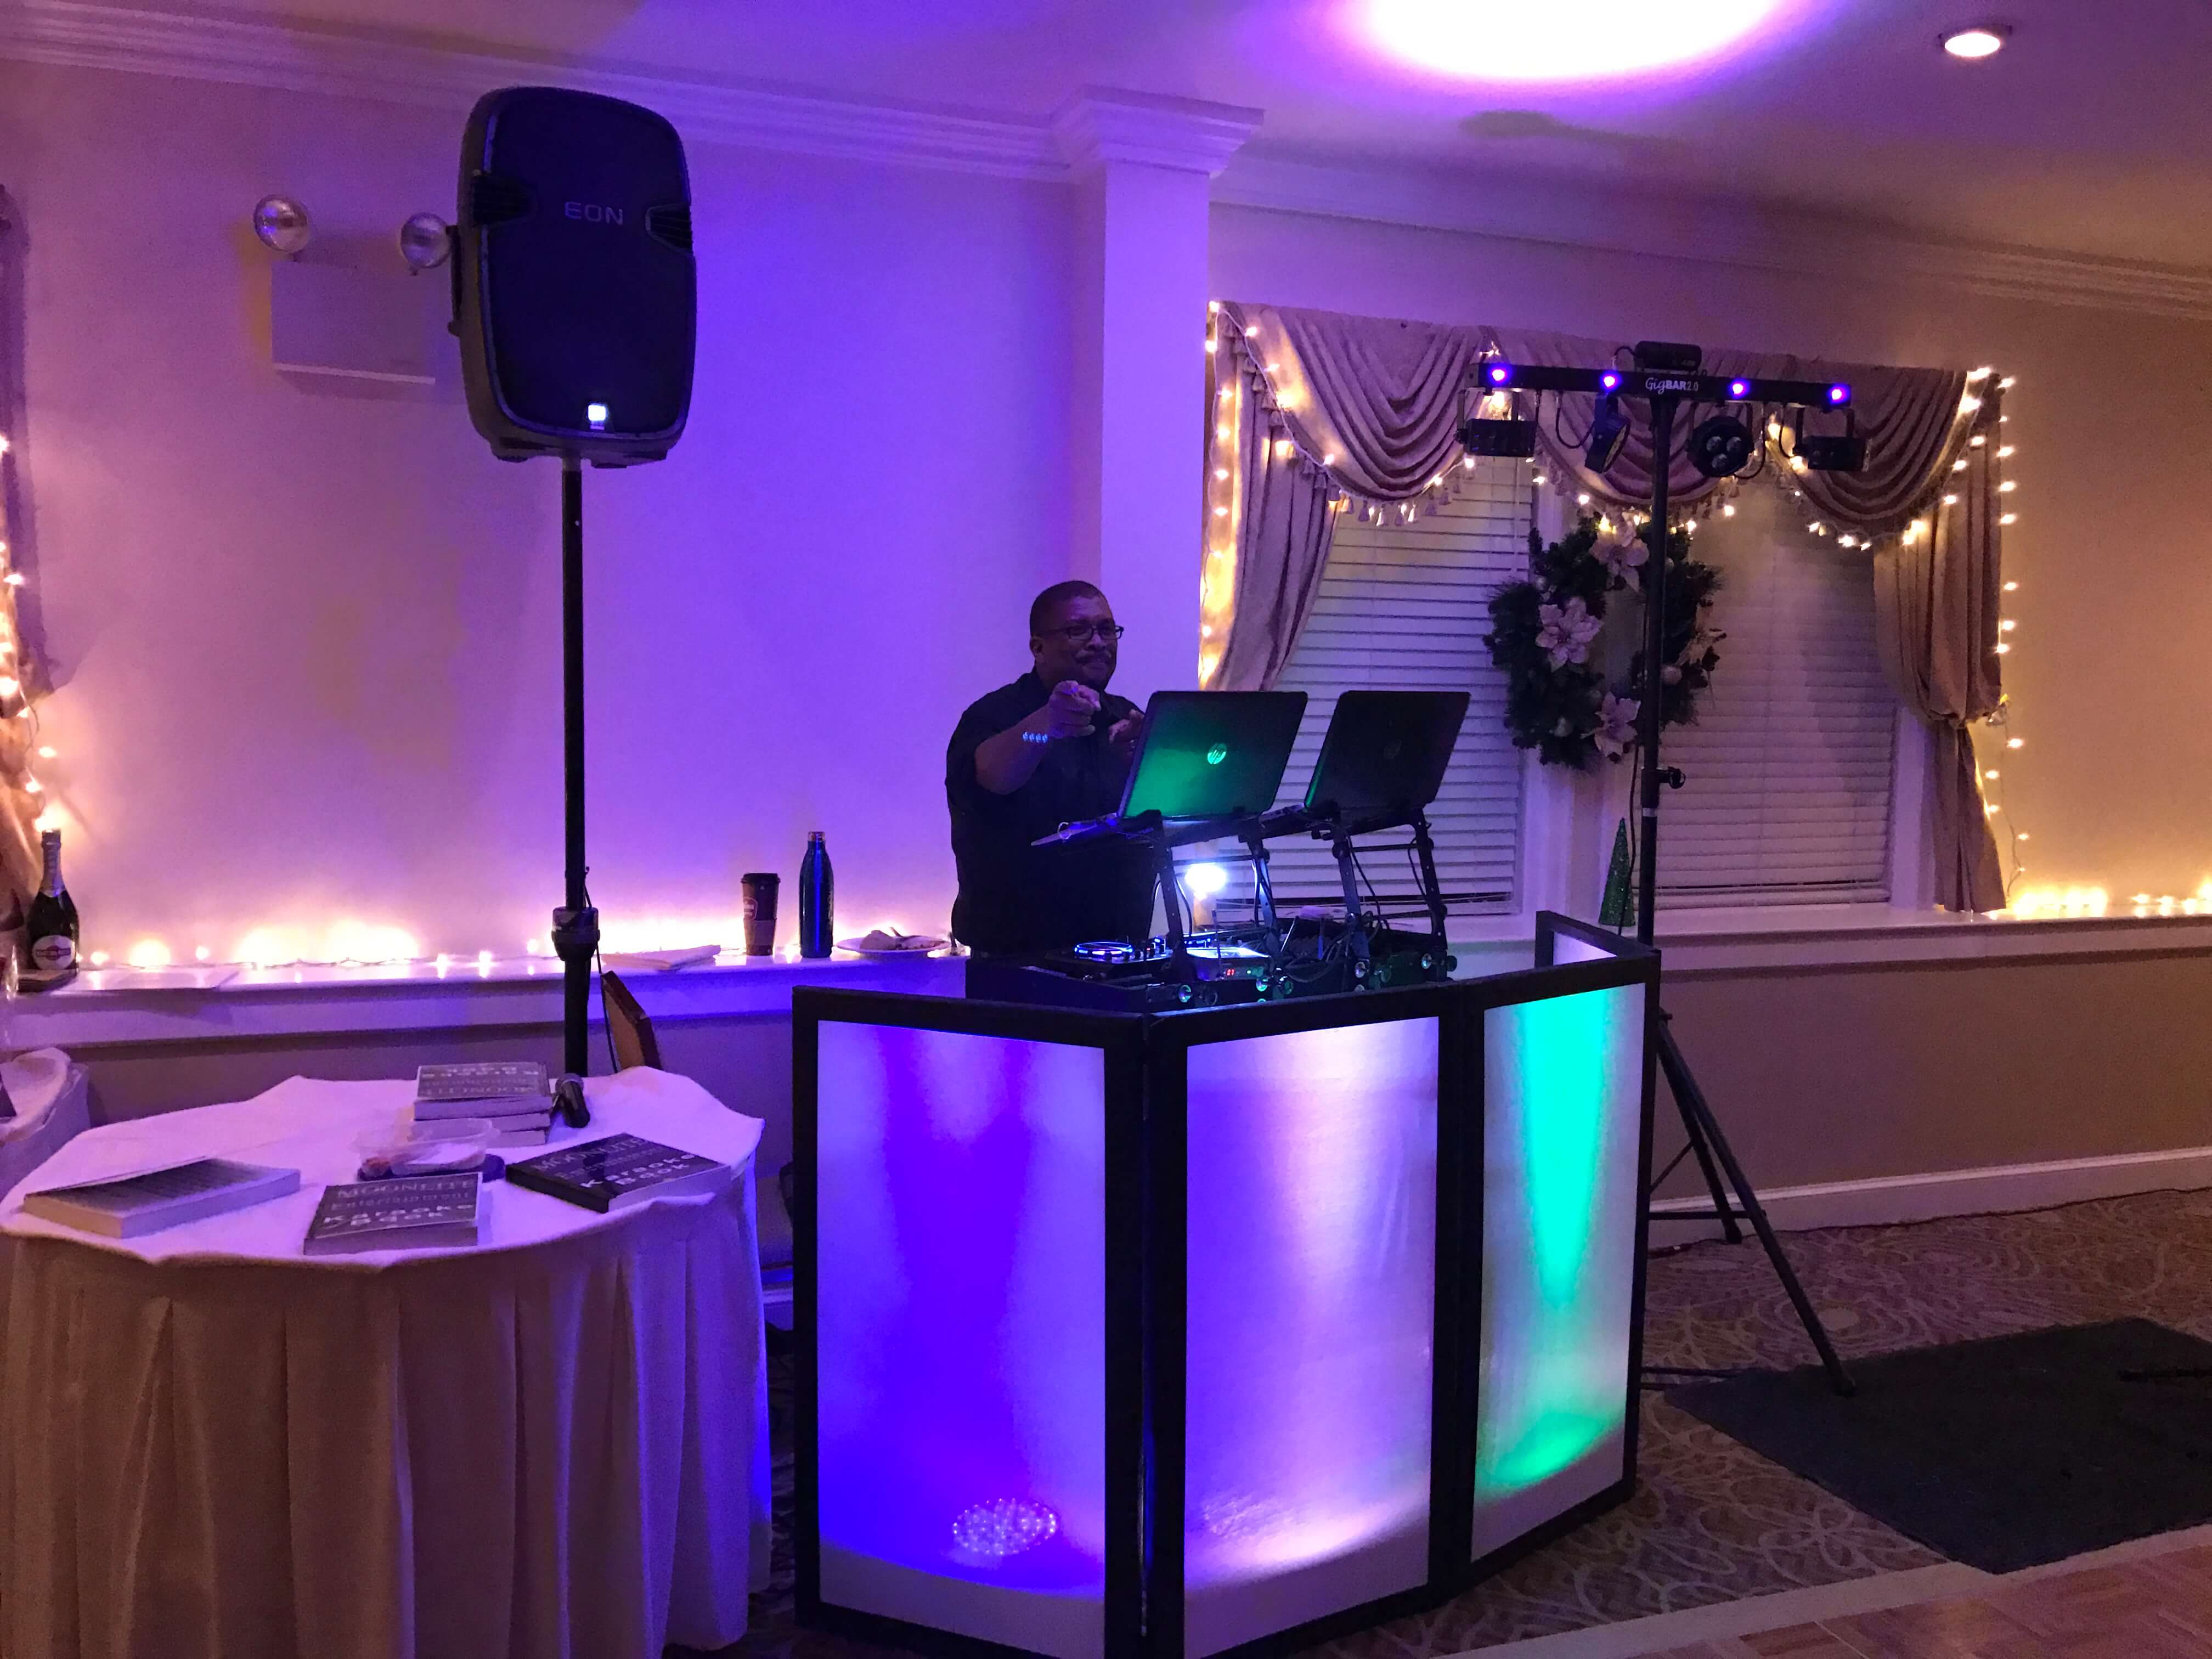 dj at booth with up lighting